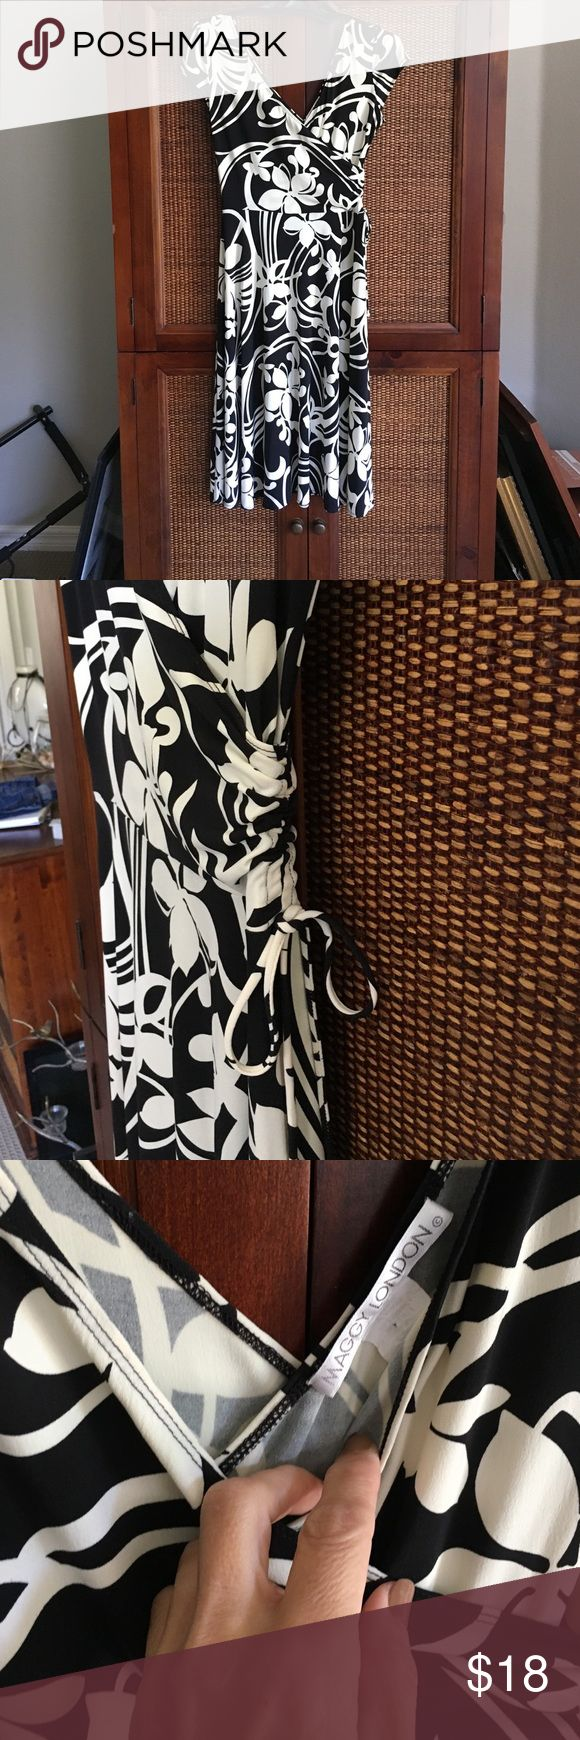 Black cream floral print sexy midi length dress 12 By Maggy London. Super cute style low cut in front and back with a cross cross styling. Full skirt bottom. Sz 12. Cute side ruching with tie accent. Like new and smoke free home. Perfect for a summer wedding or party. MIDI length. Maggy London Dresses Midi